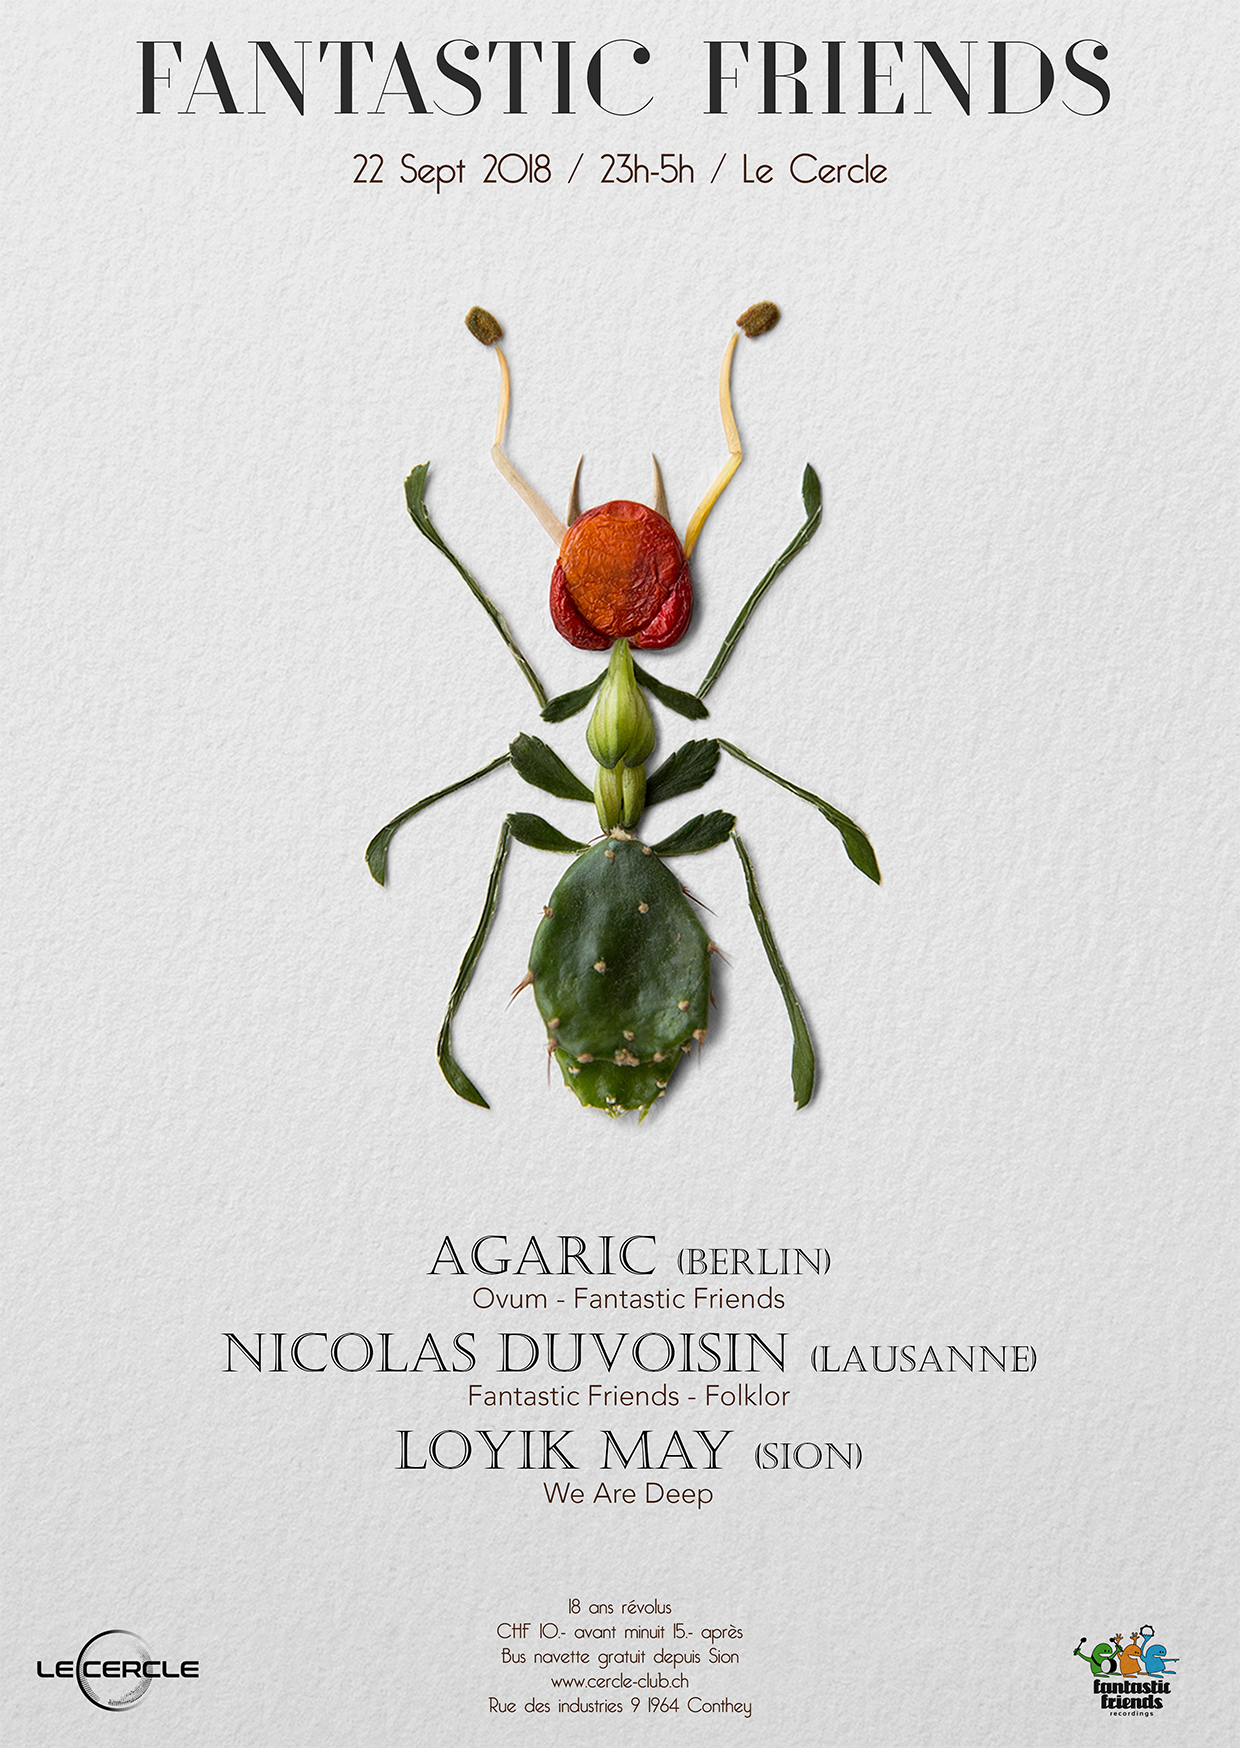 FANTASTIC FRIENDS PARTY ! WITH AGARIC & NICOLAS DUVOISIN 22.09.18